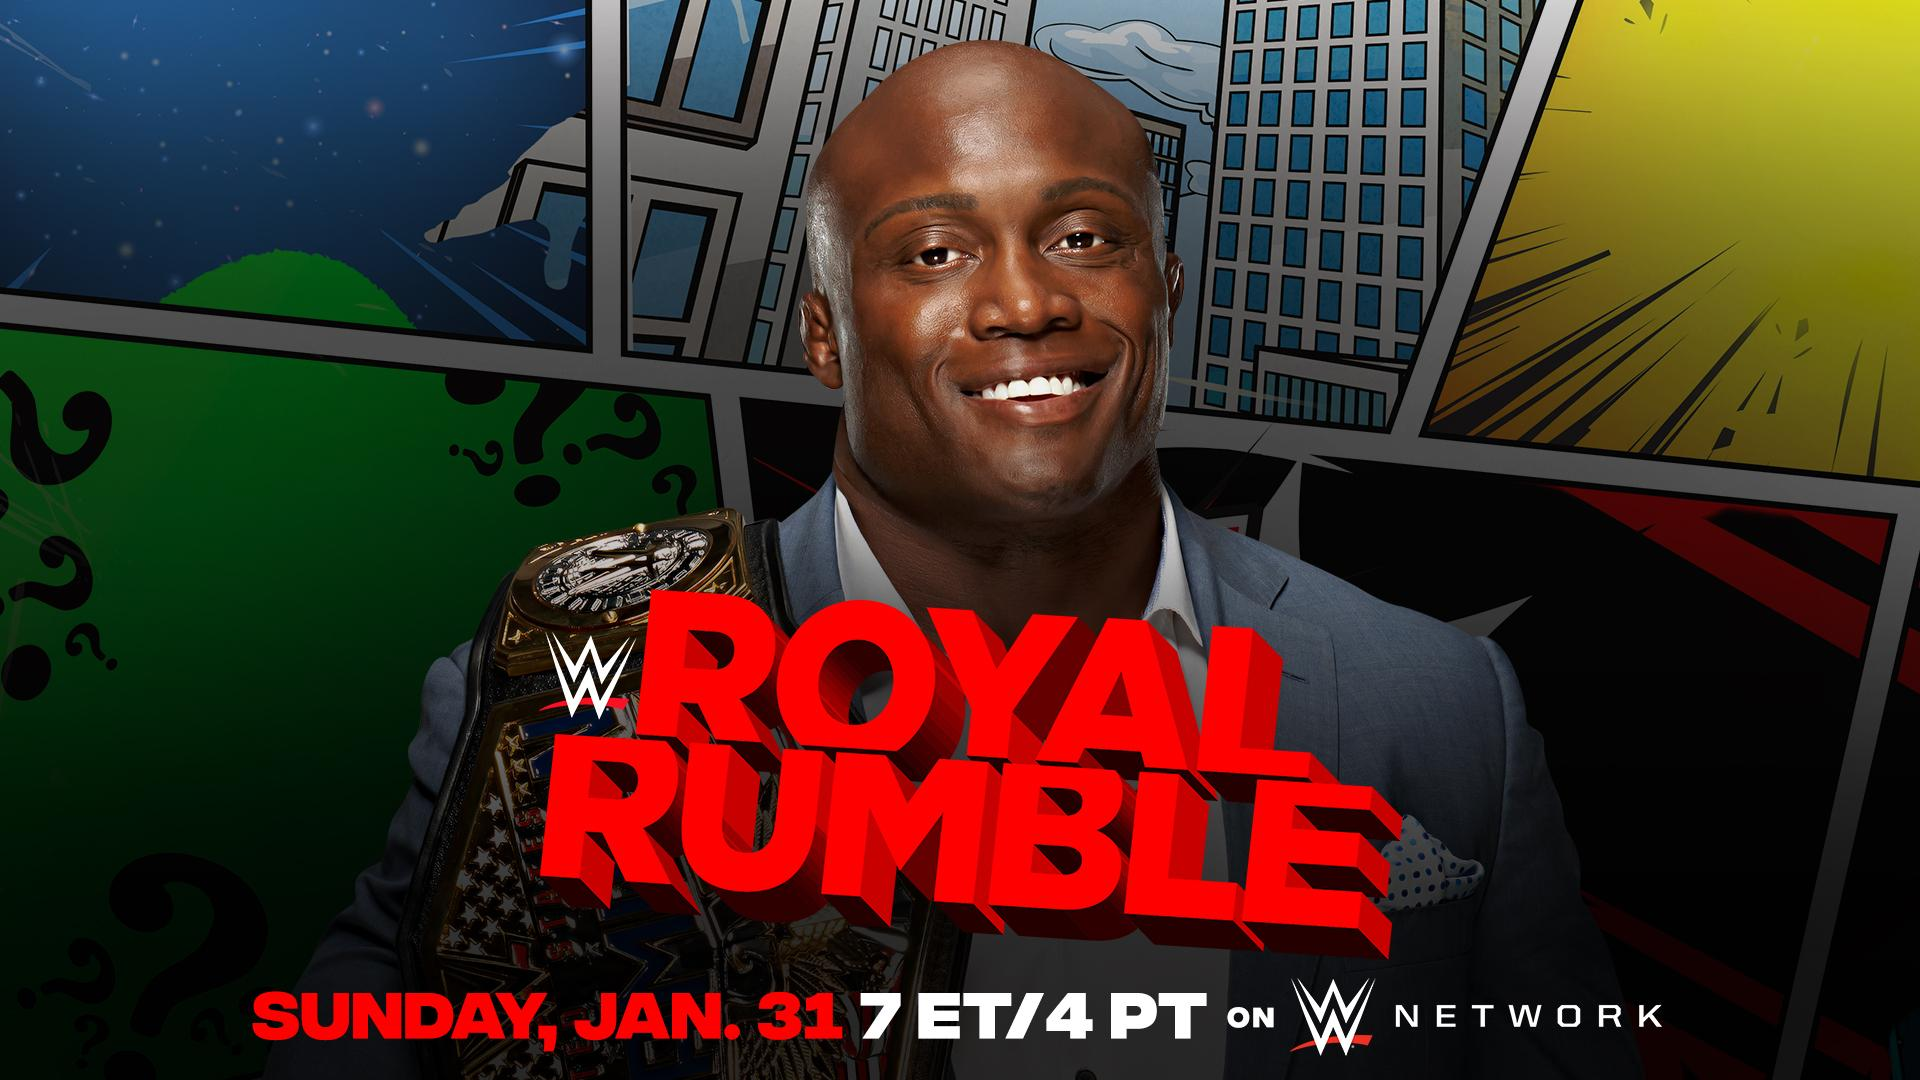 WWE Raw: Huge Title Match And Royal Rumble Announcement Made 52